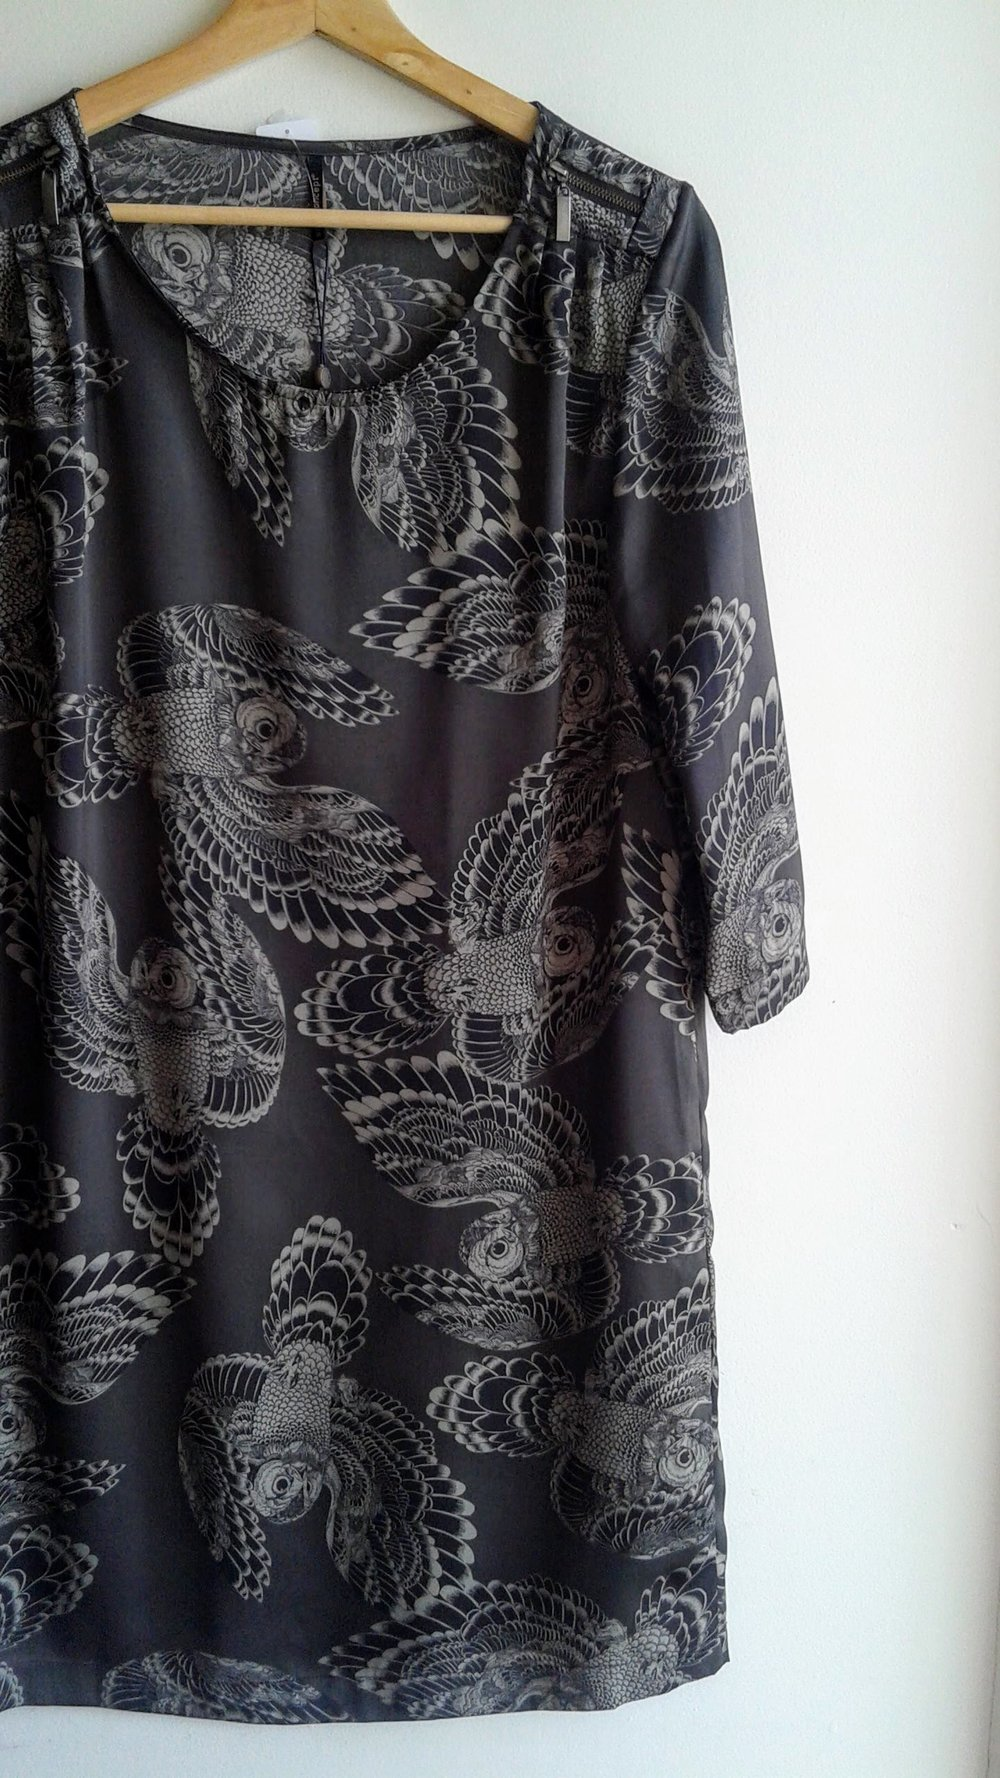 Soya Concepts dress (NWT); Size M, $48